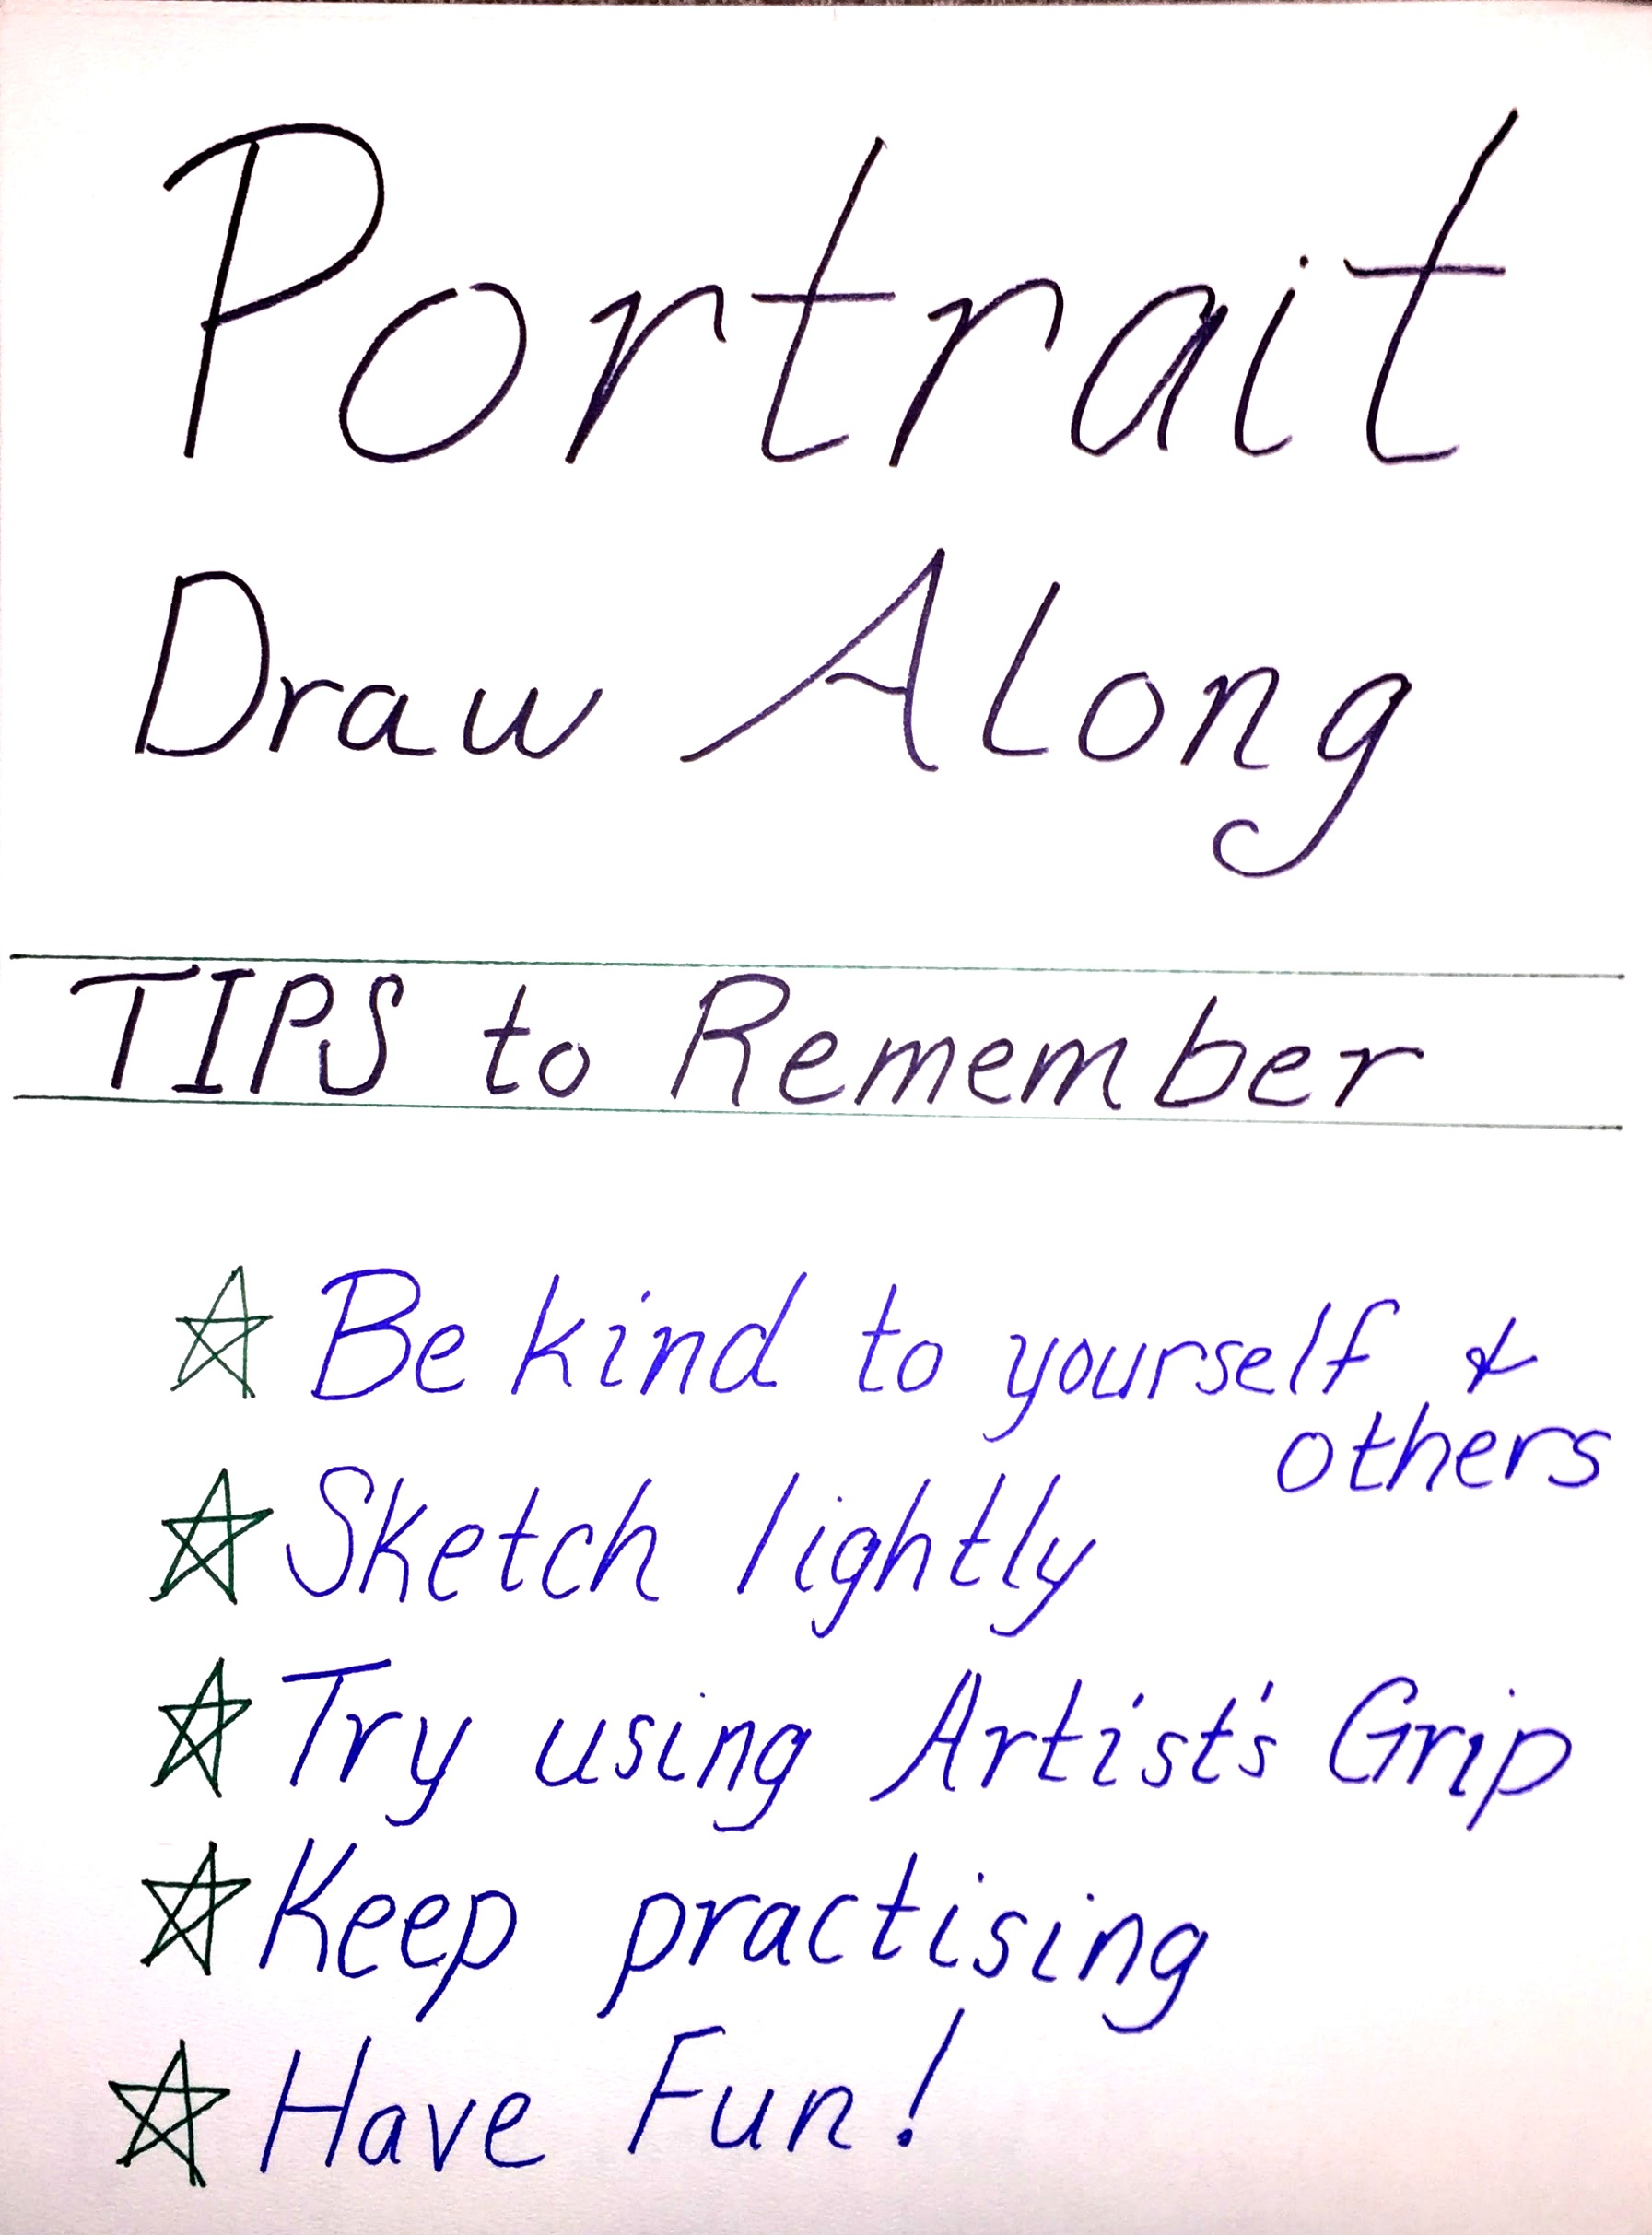 page-0-Cover-4-W-Portrait-Draw-Along.jpg